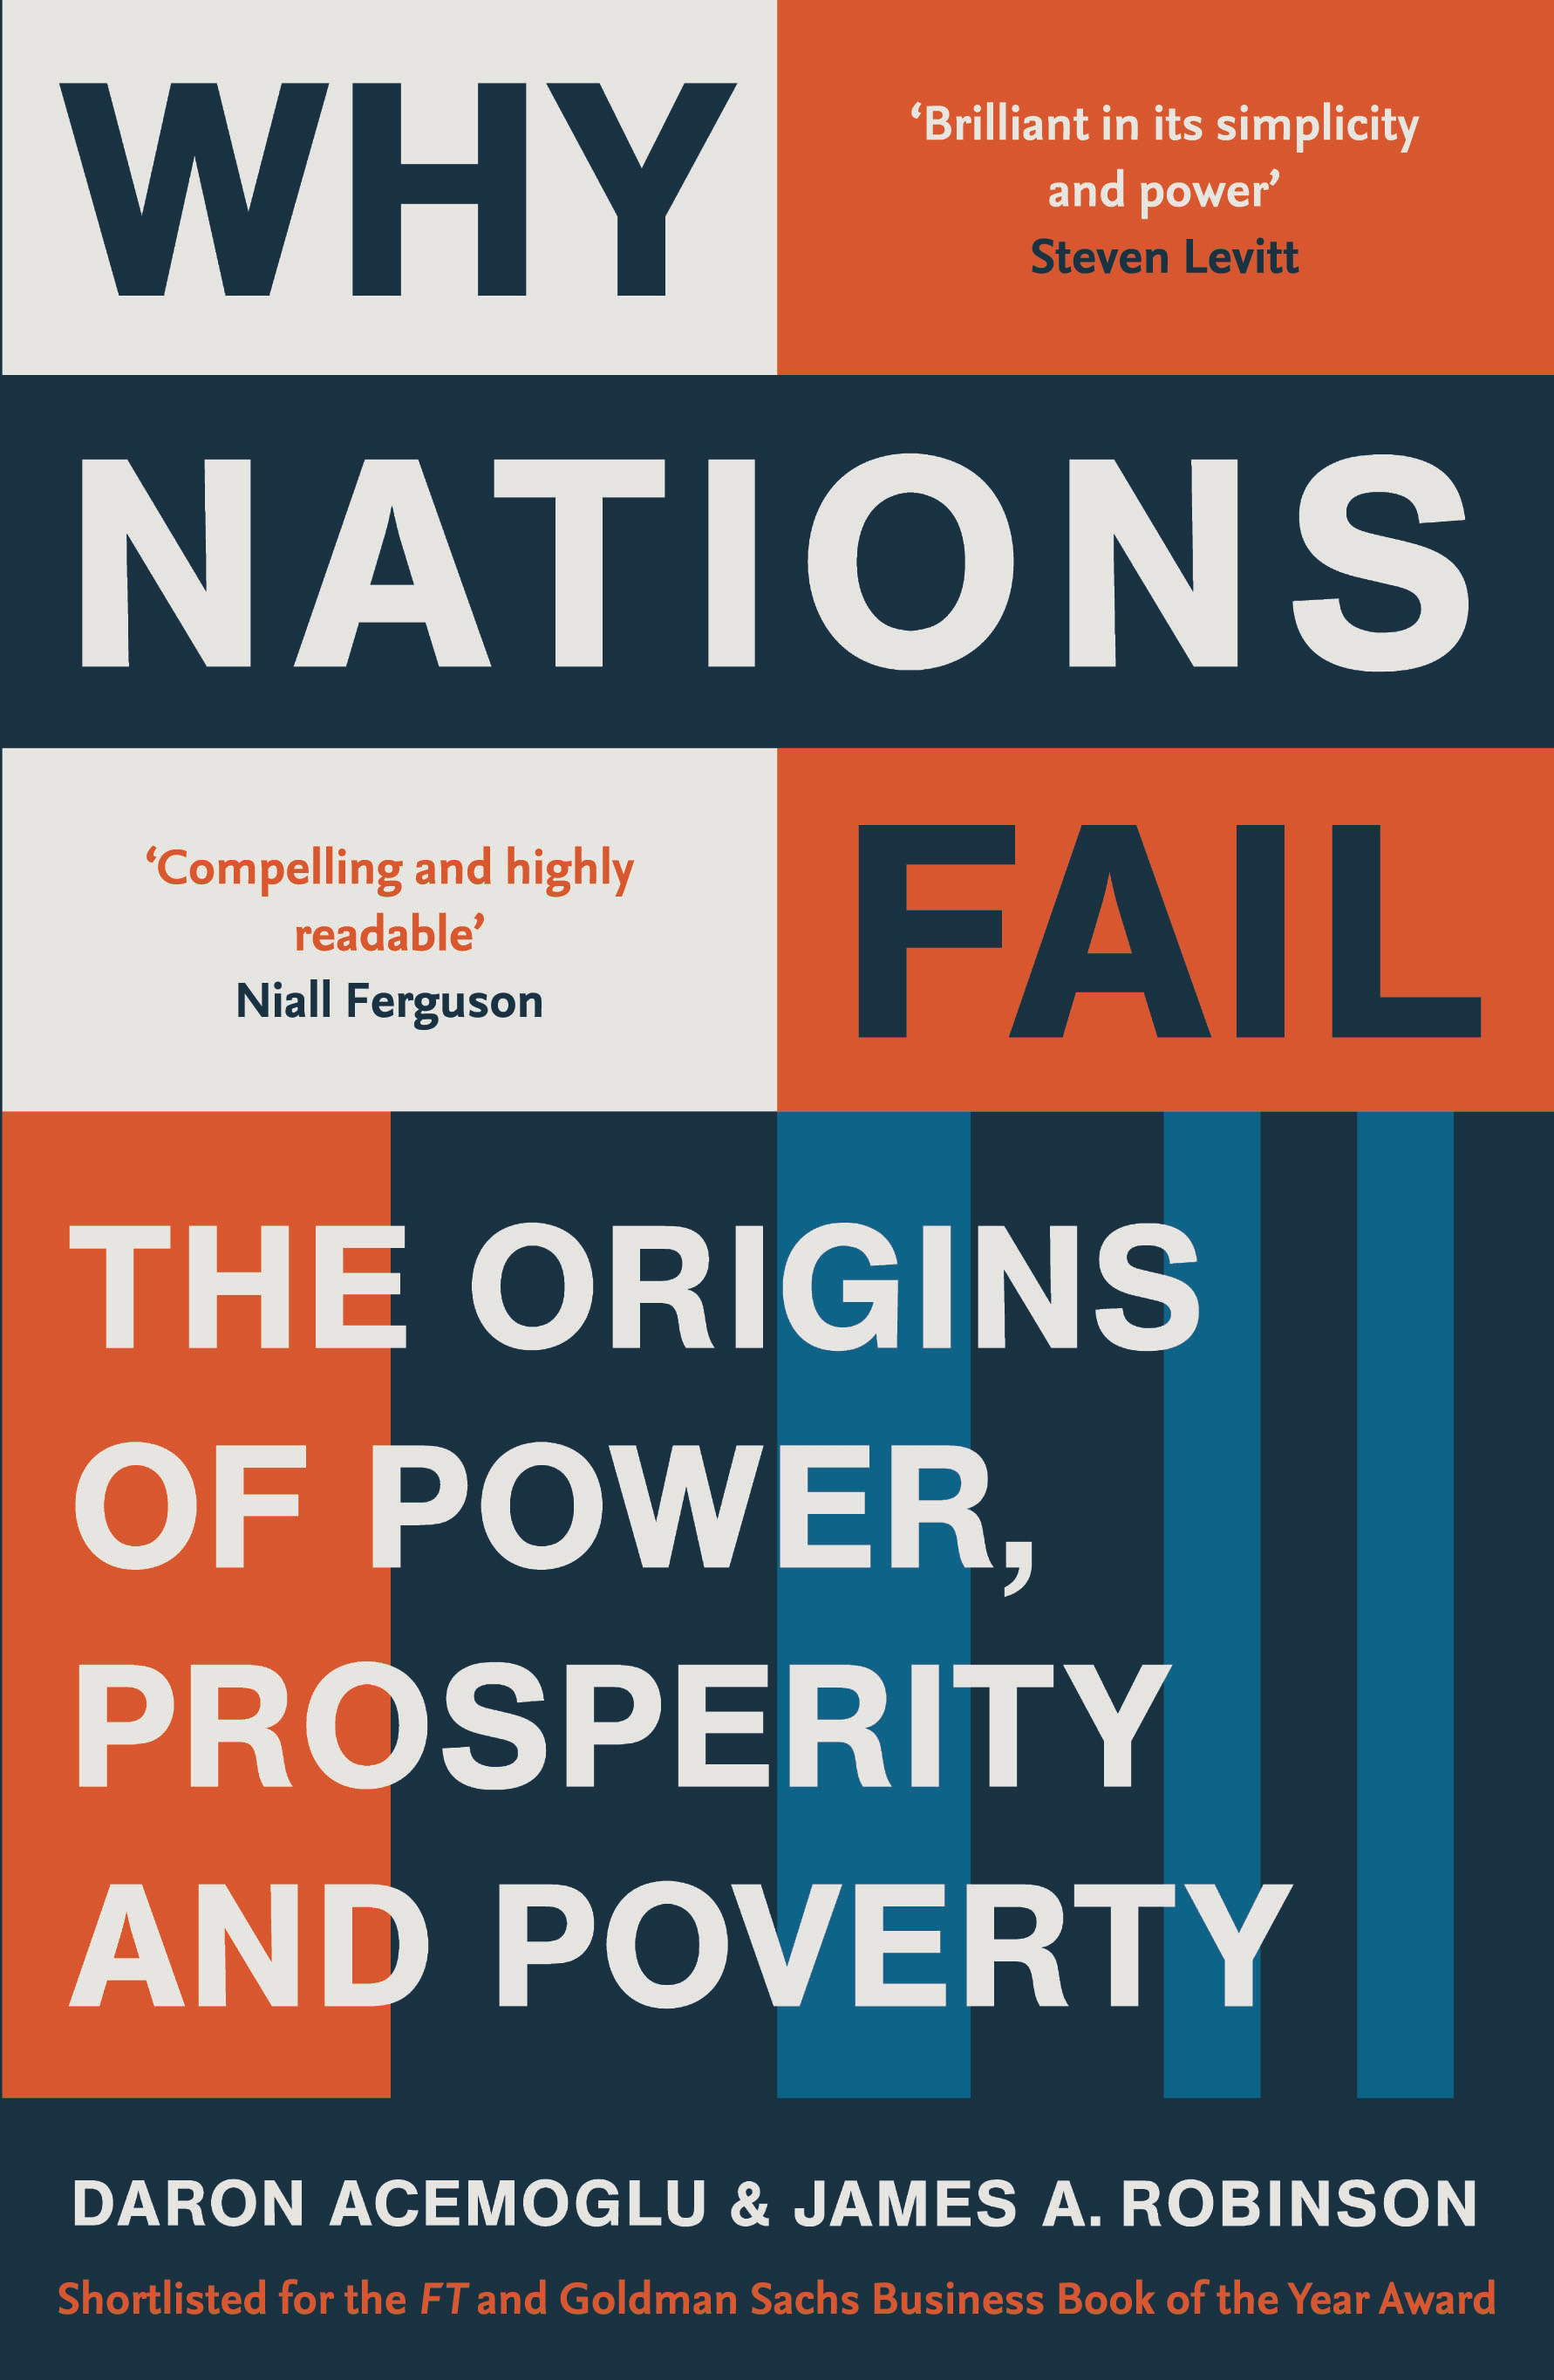 Why Nations Fail - James A. Robinson and Daron Acemoglu